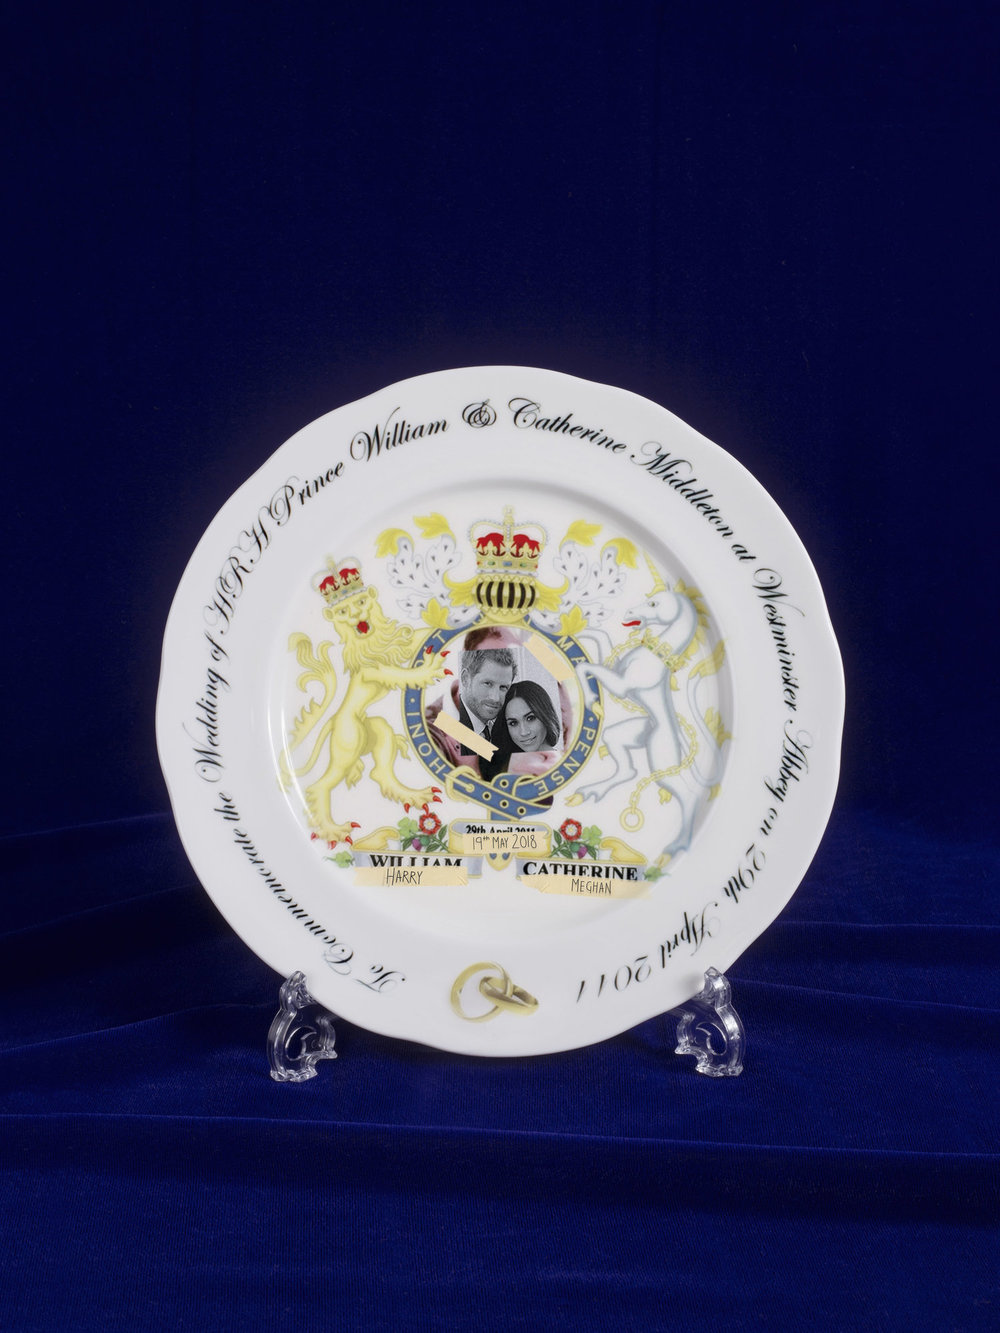 Harry and Meghan Wedding Gift.jpg